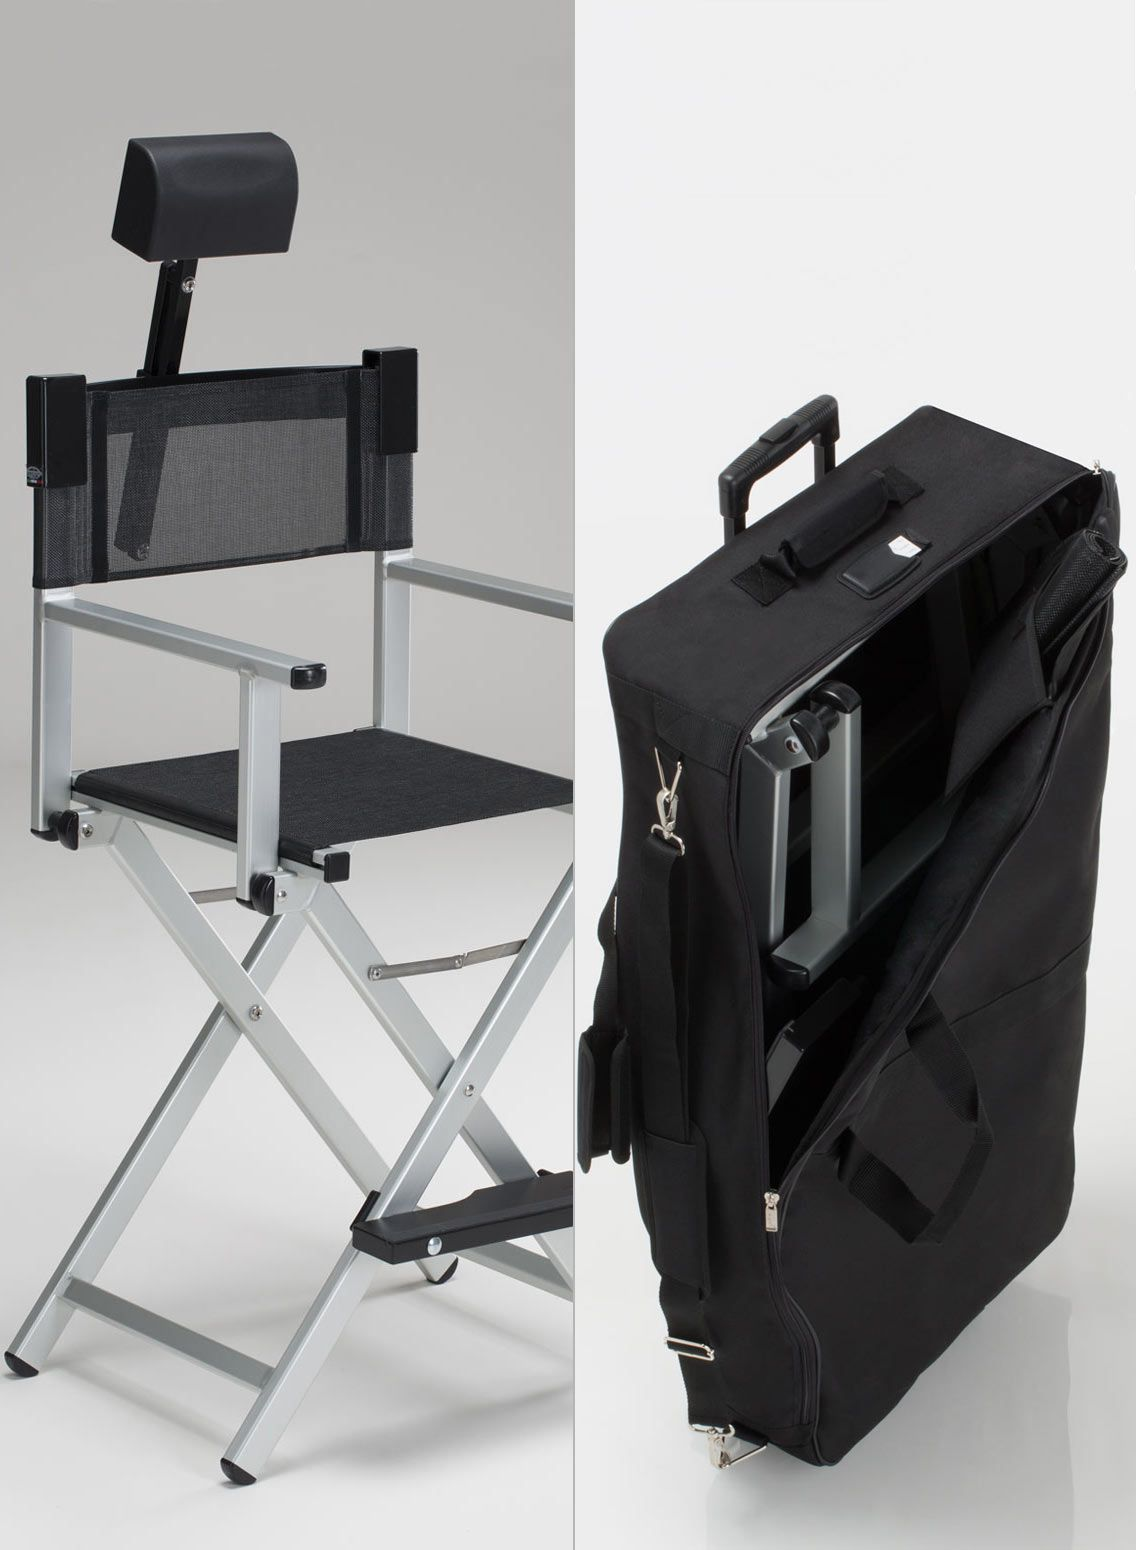 Aluminum Makeup Chair Set With Headrest And Trolley Bag In